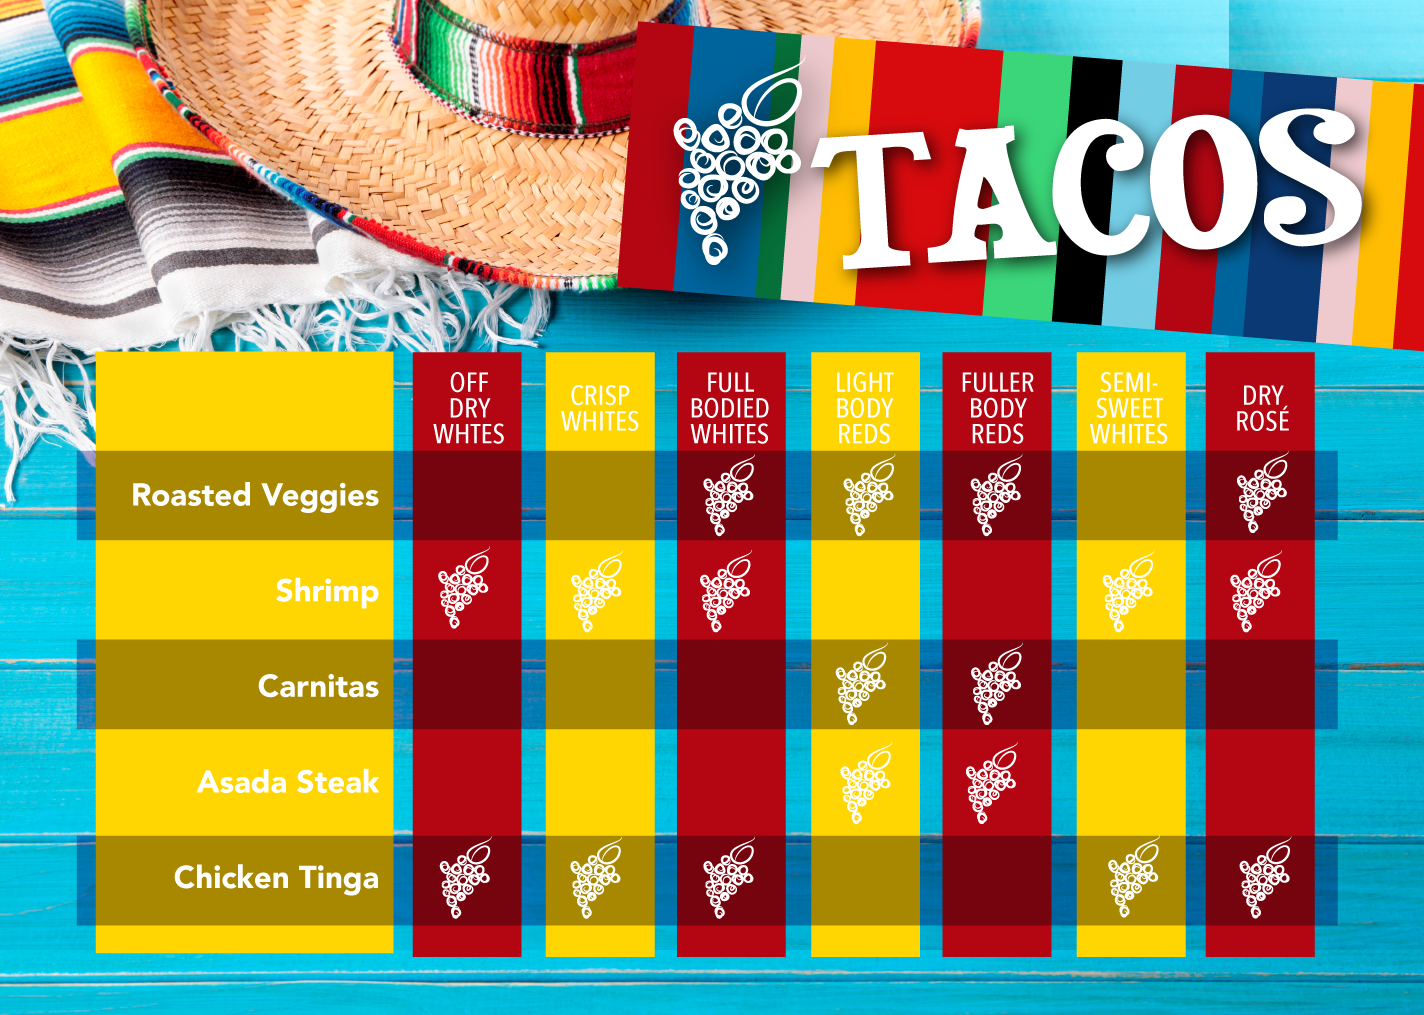 taco and wine pairings from traveling vineyard sommology